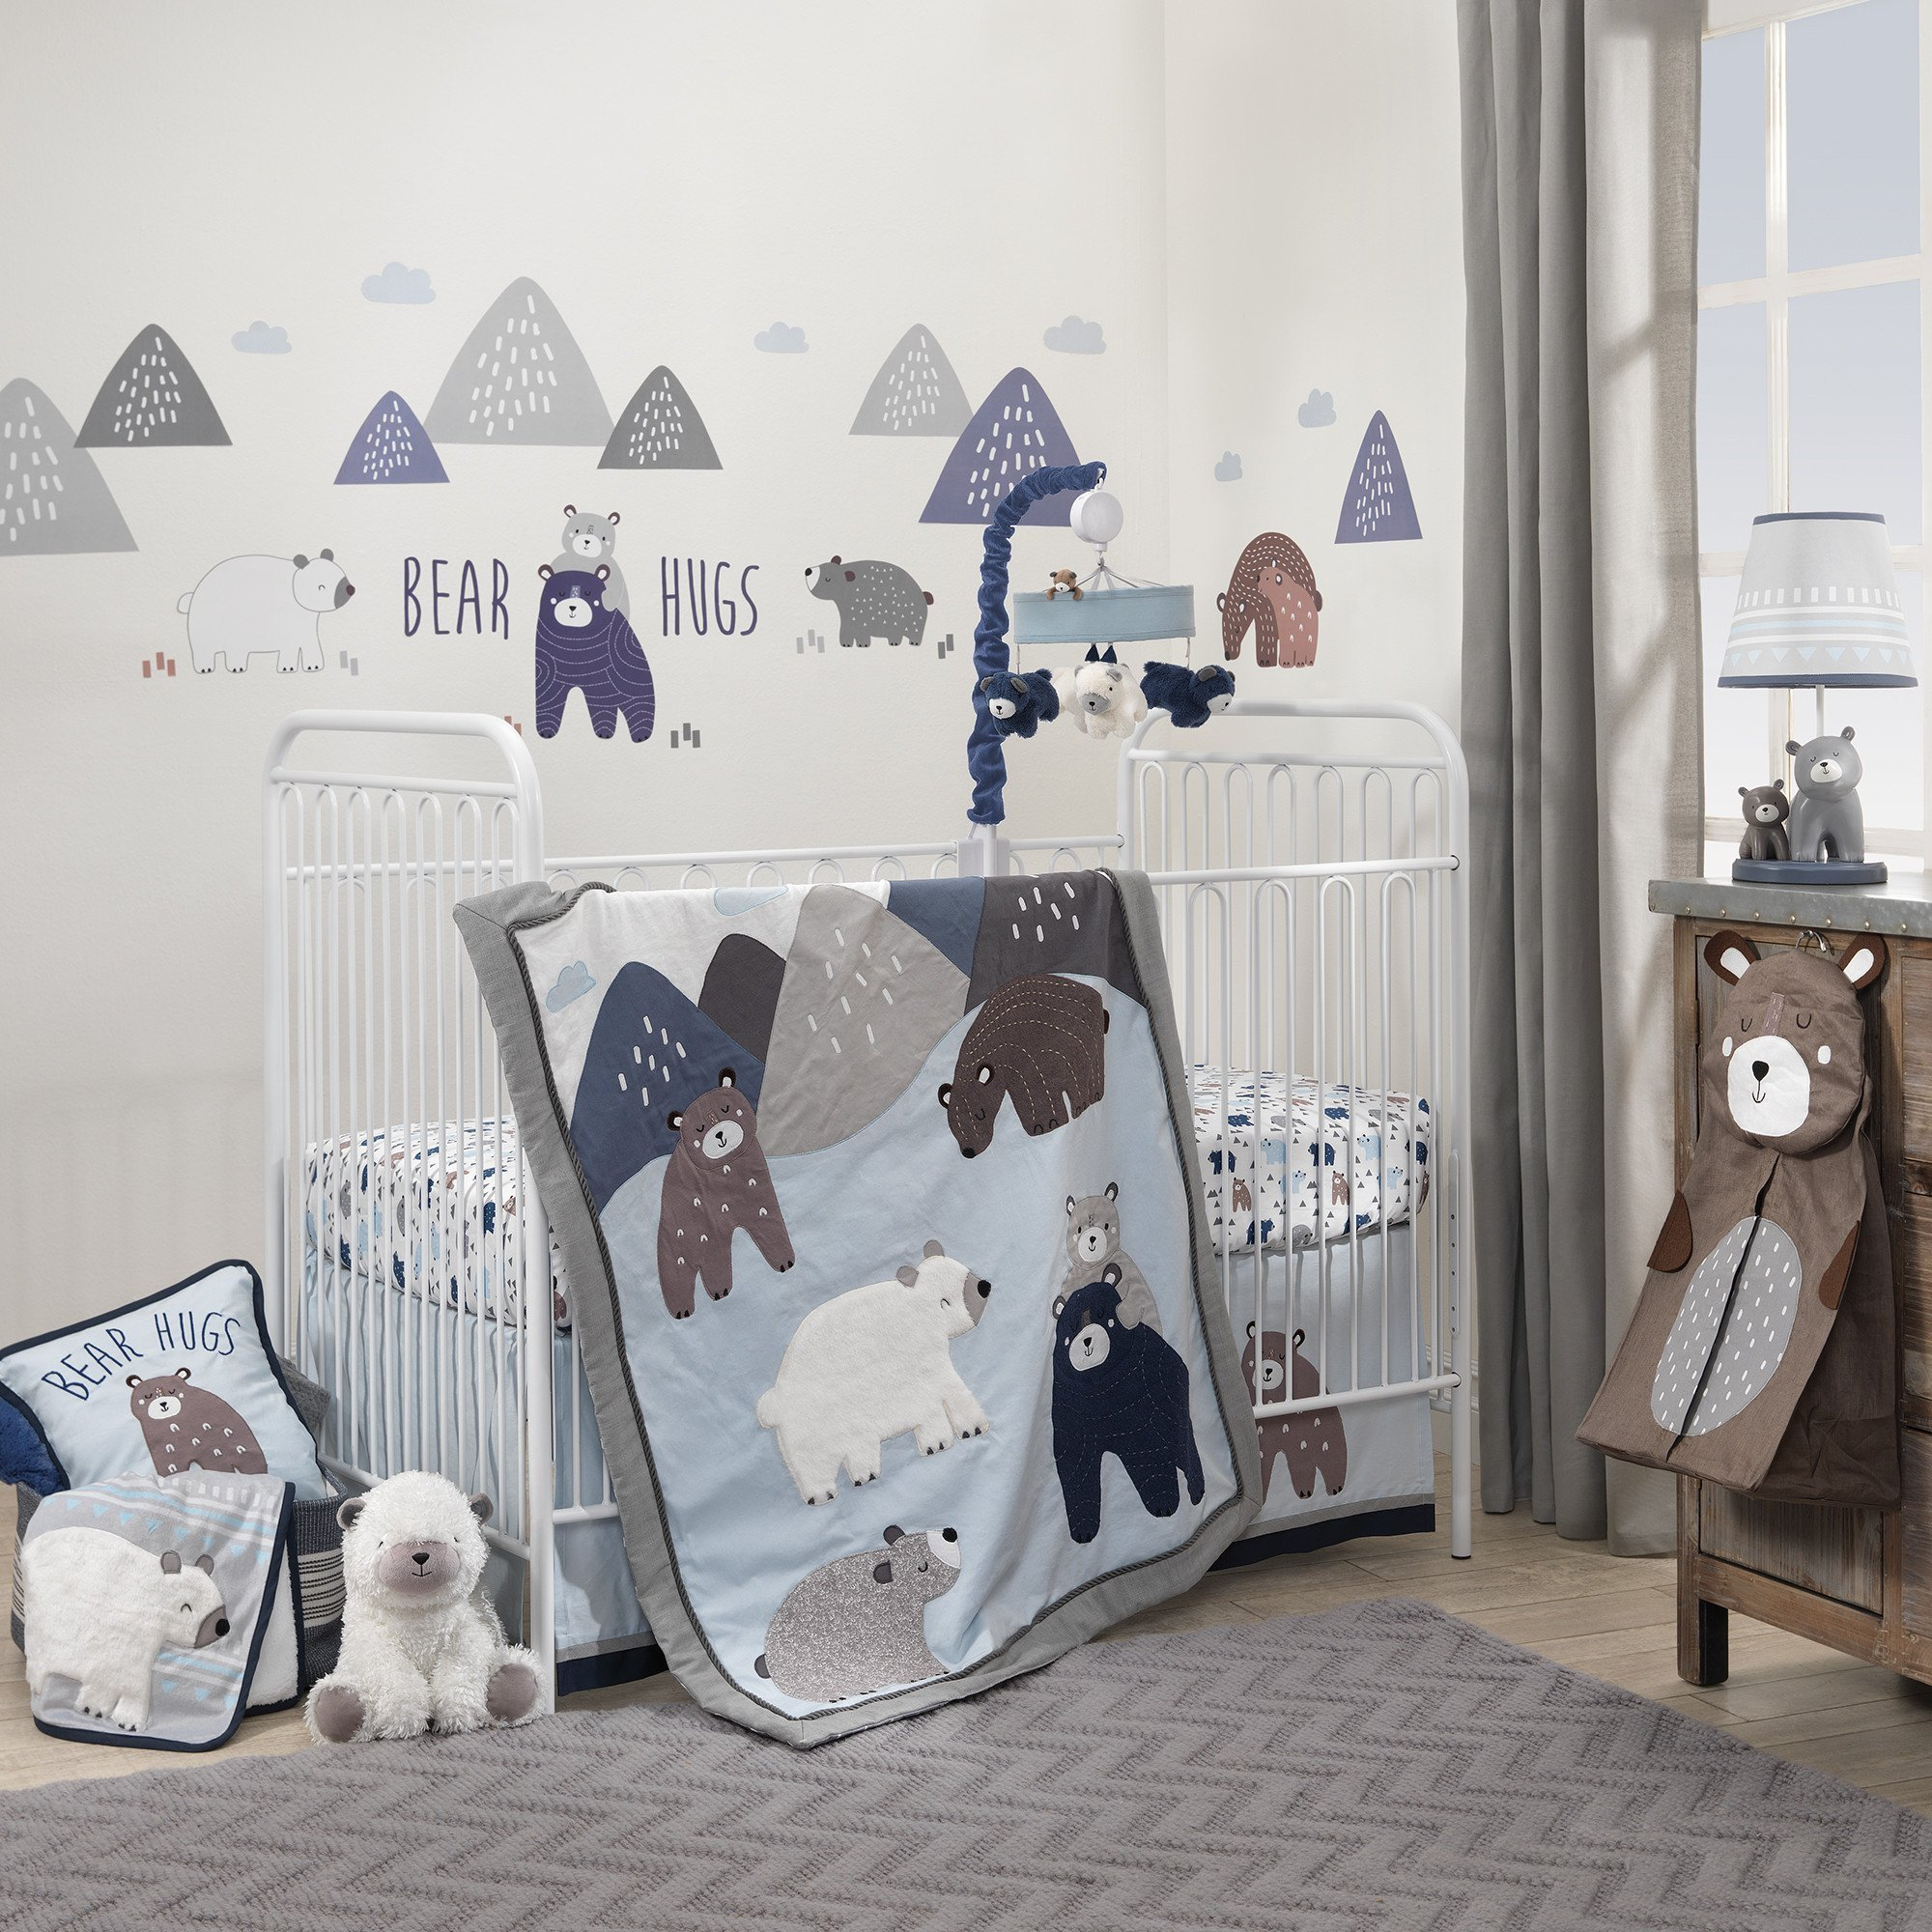 Lambs & Ivy Signature Montana 6-Piece Baby Crib Bedding Set - Blue,Grey,Brown Bears and Mountains by Lambs & Ivy